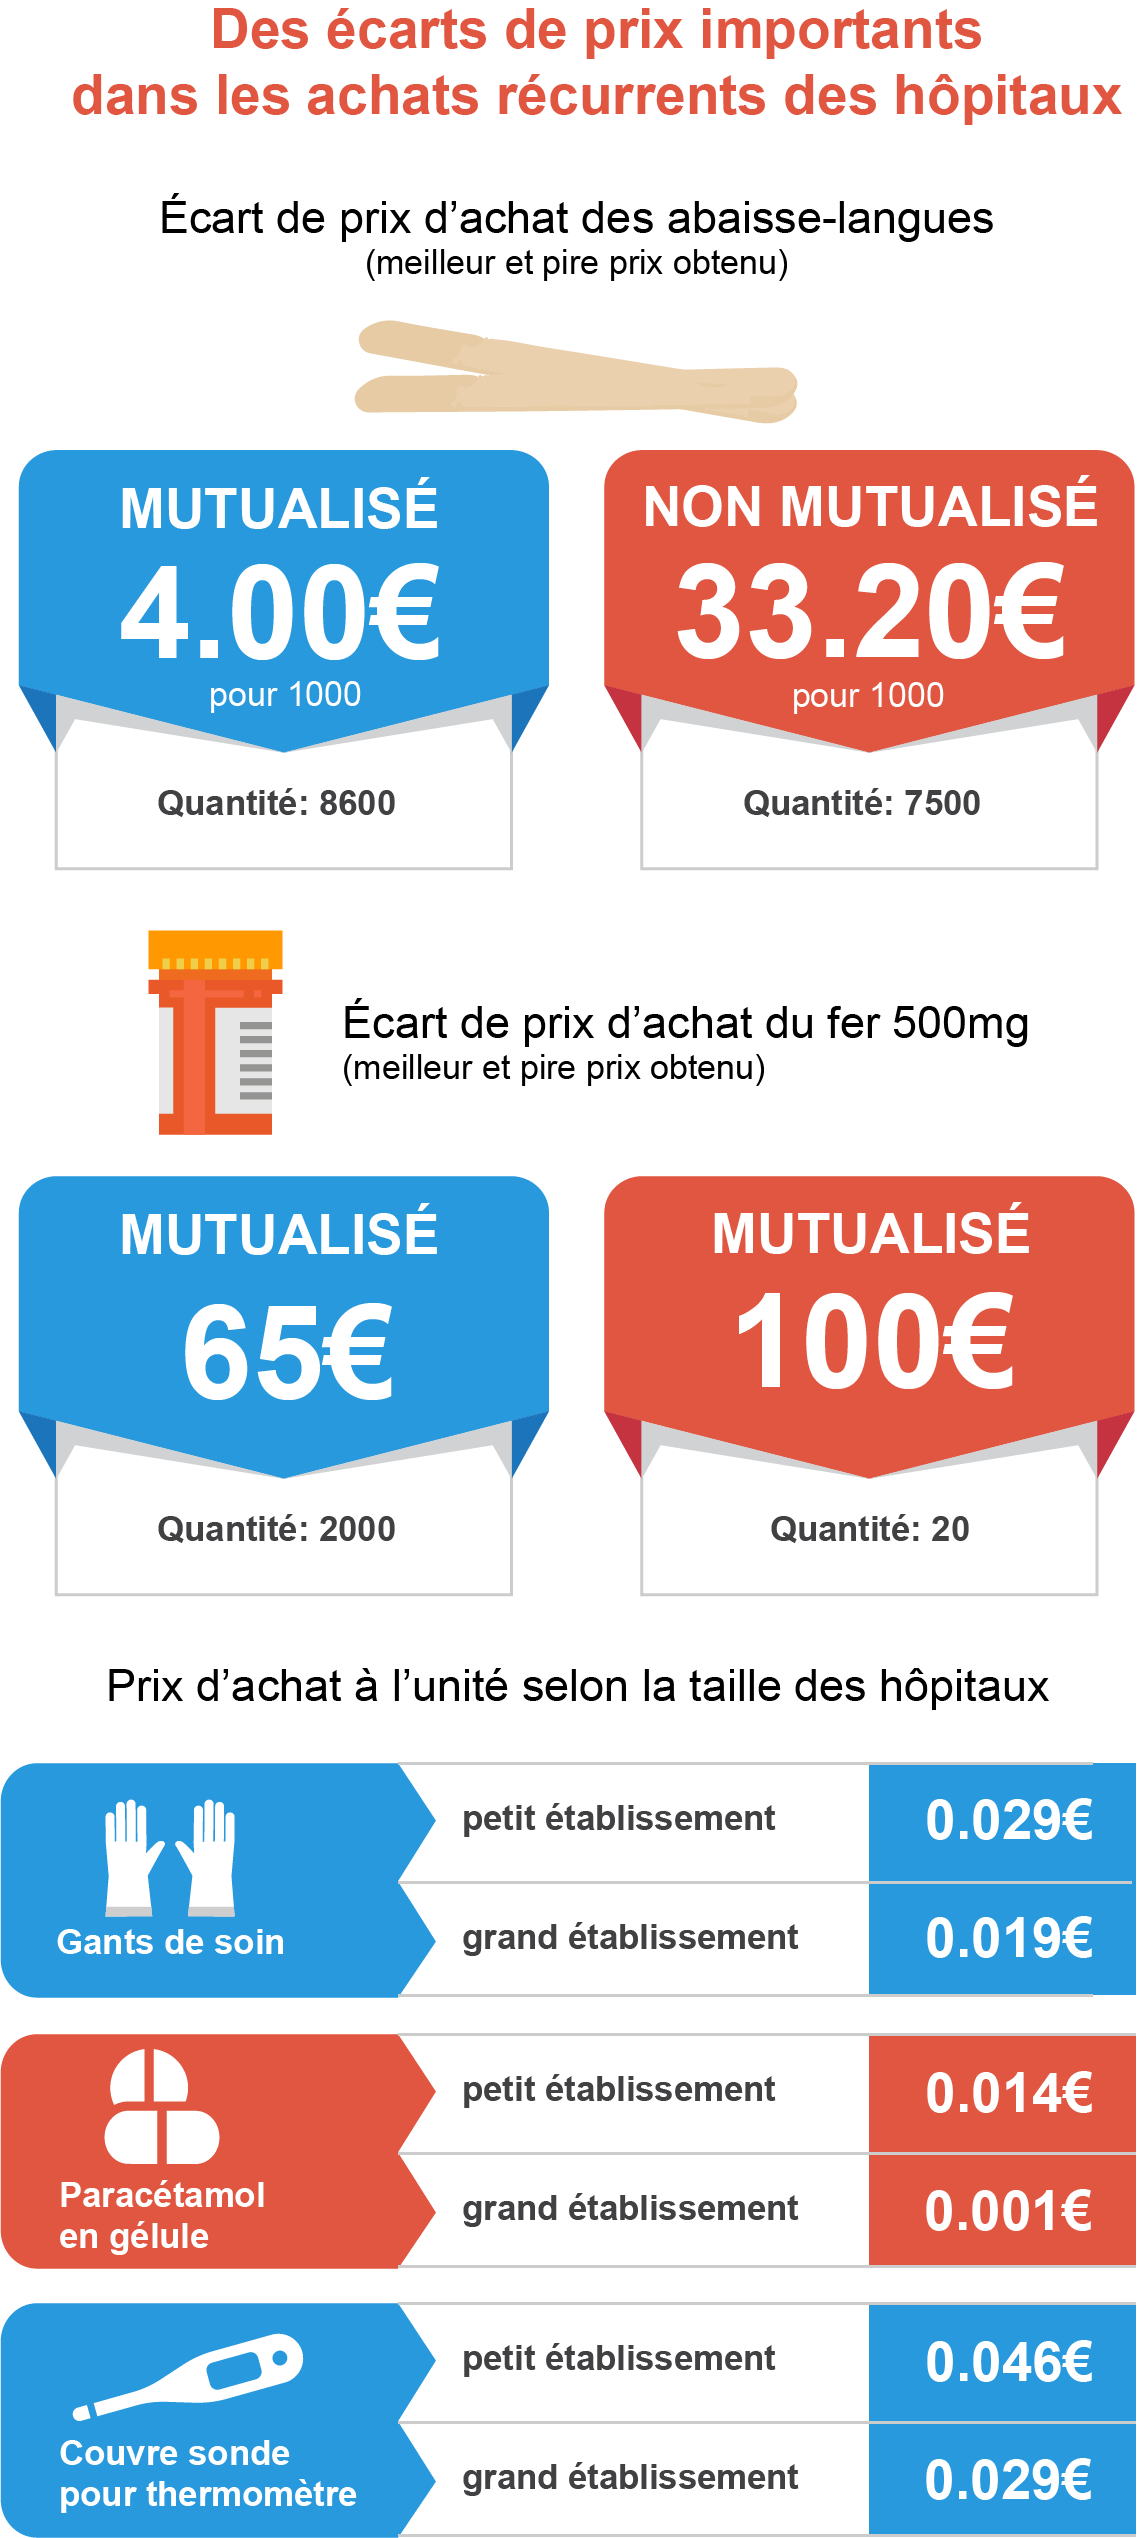 infographie prix achats hospitaliers